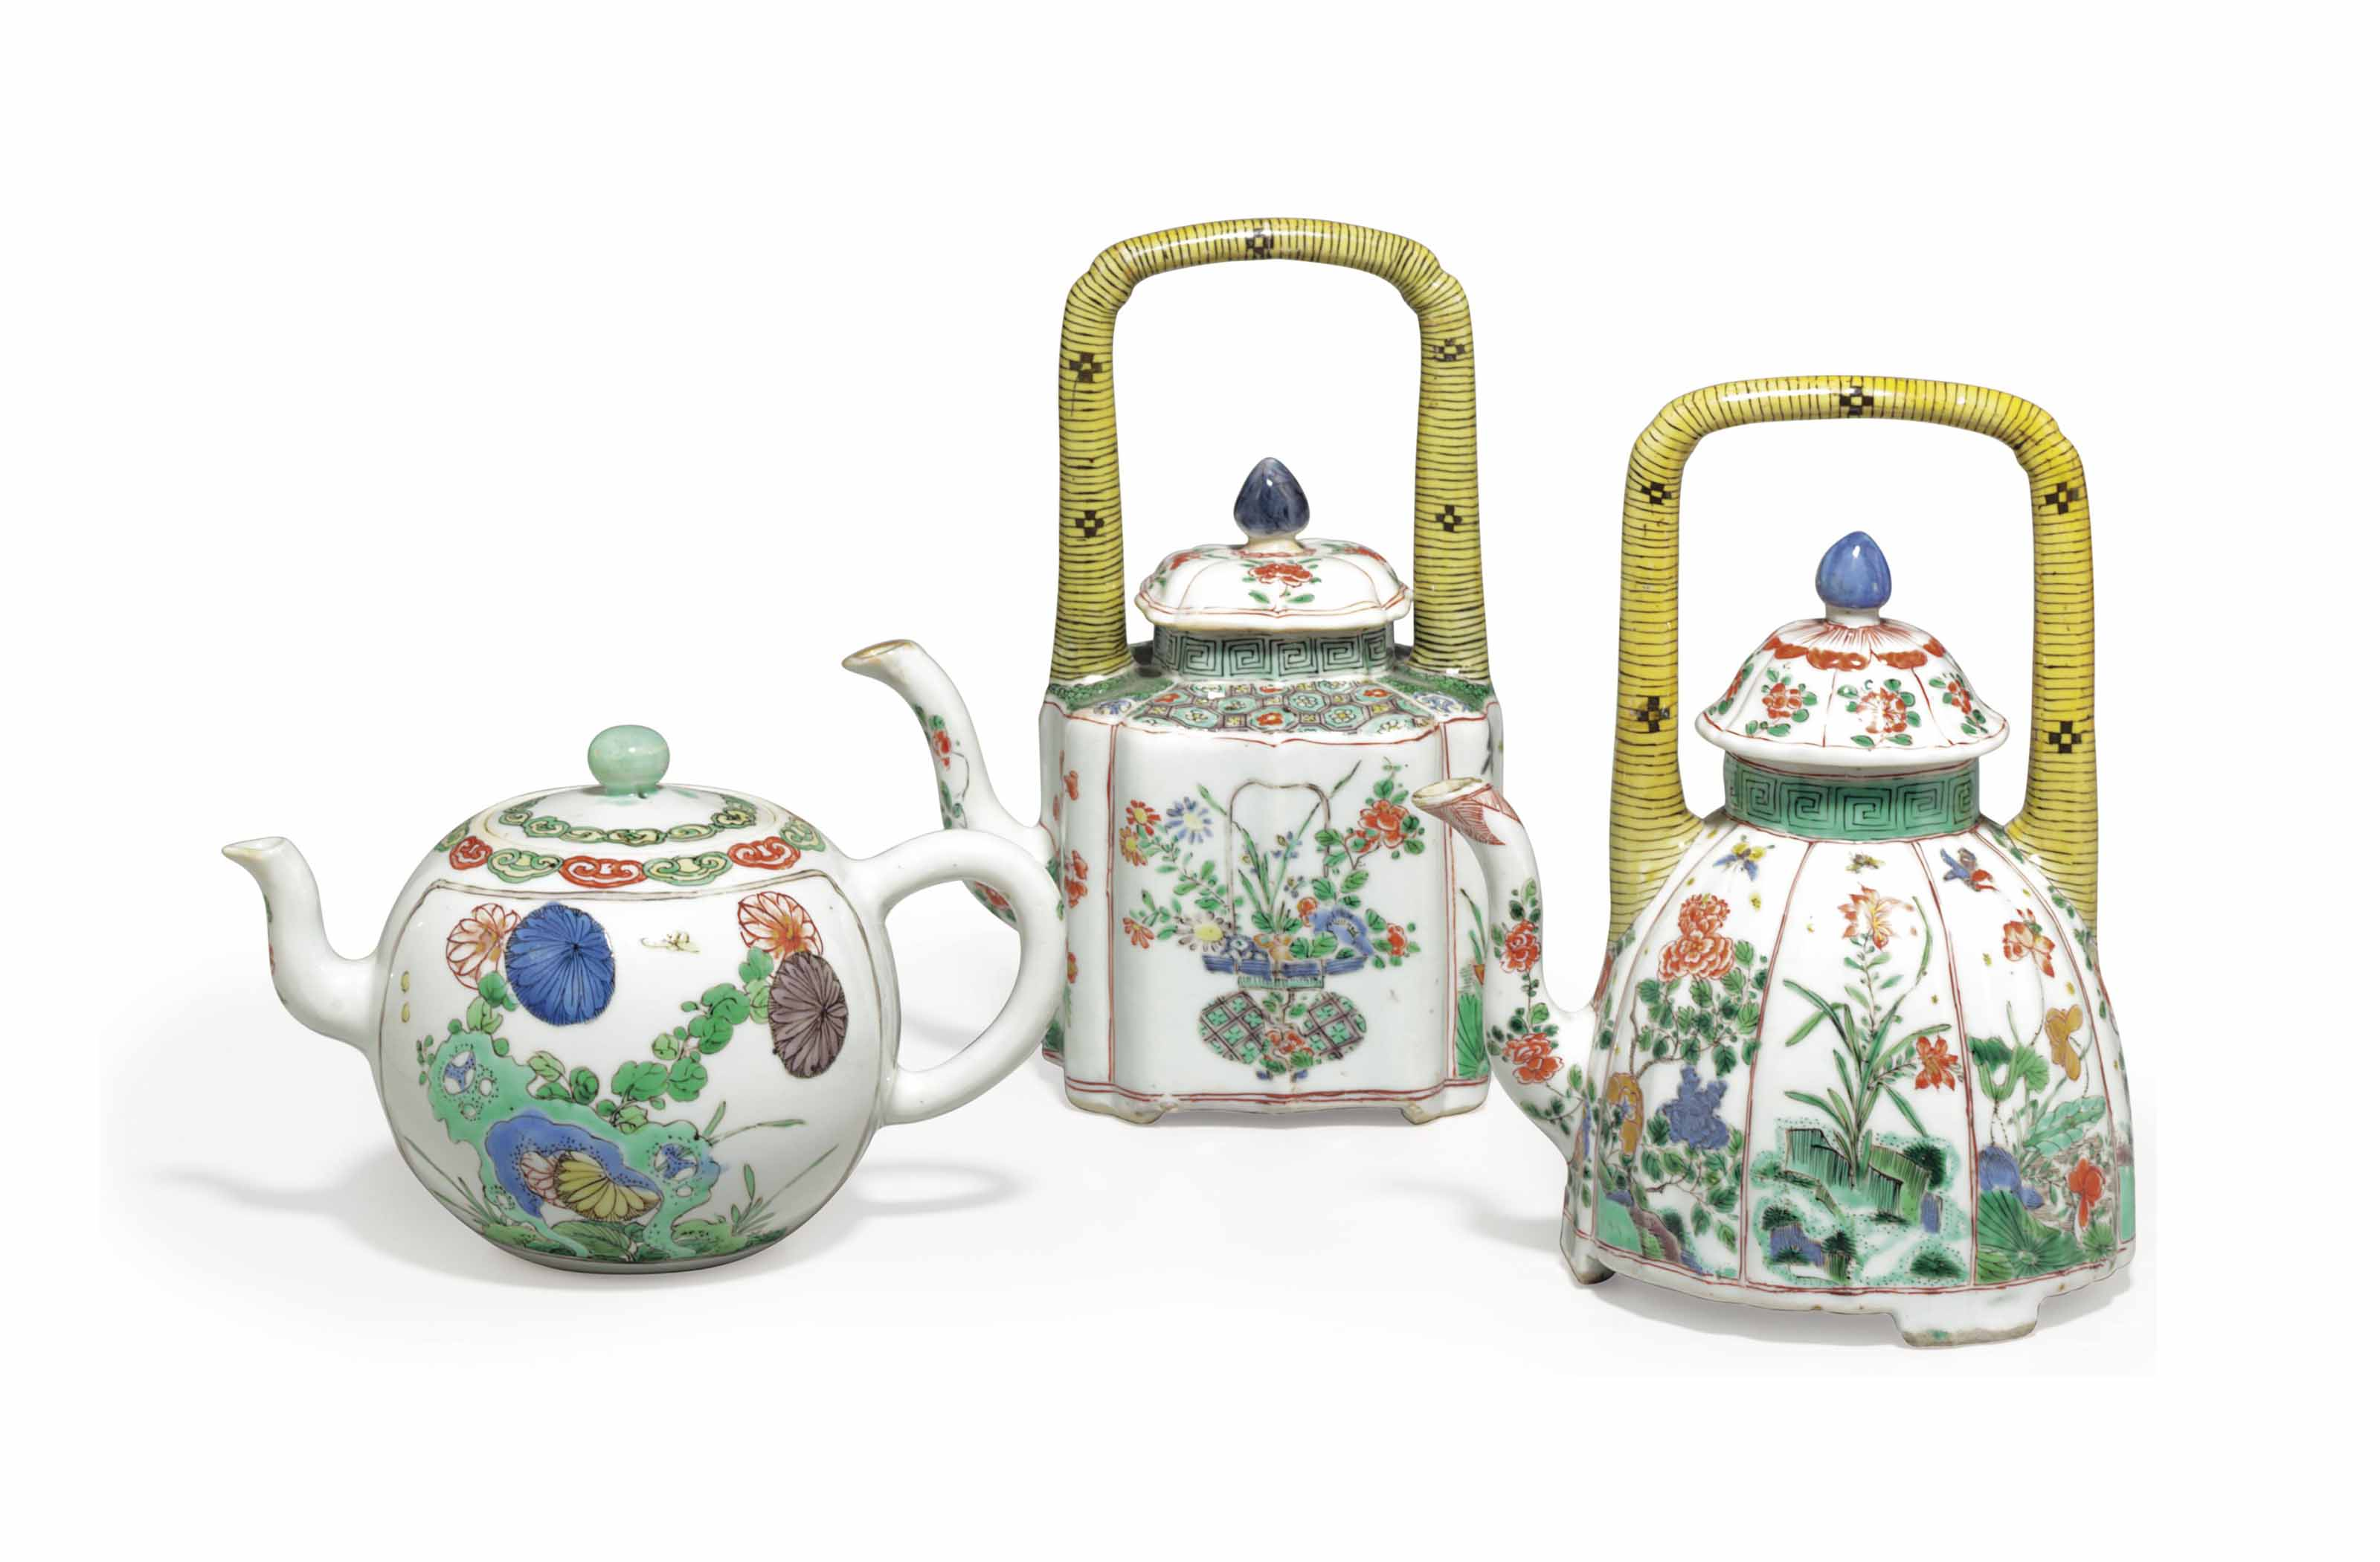 THREE CHINESE FAMILLE VERTE PORCELAIN TEAPOTS AND COVERS